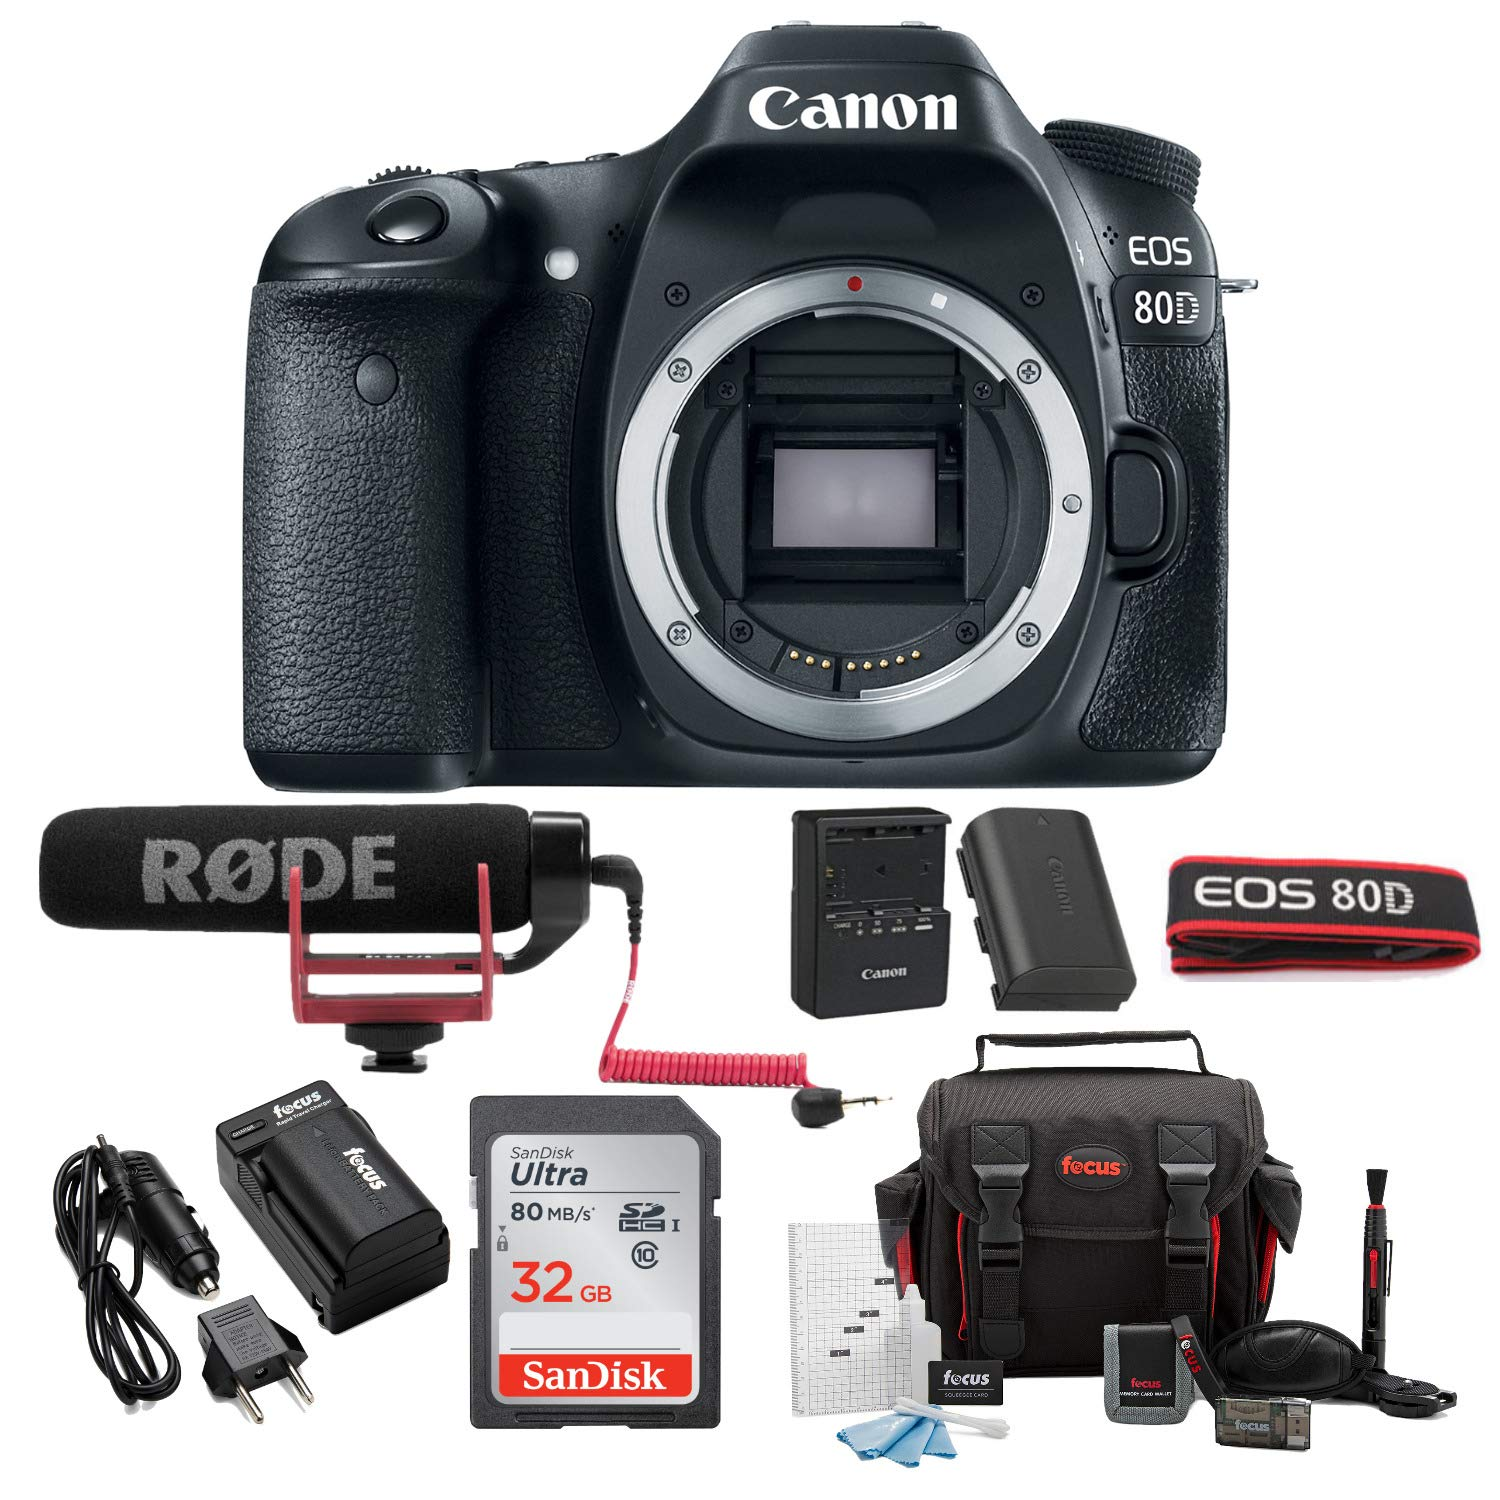 Canon EOS 80D Digital Camera: 24 Megapixel 1080p HD Video DSLR Video  Creator Bundle with 32GB SD Card Rode VideoMic GO Spare Battery & Travel  Charger